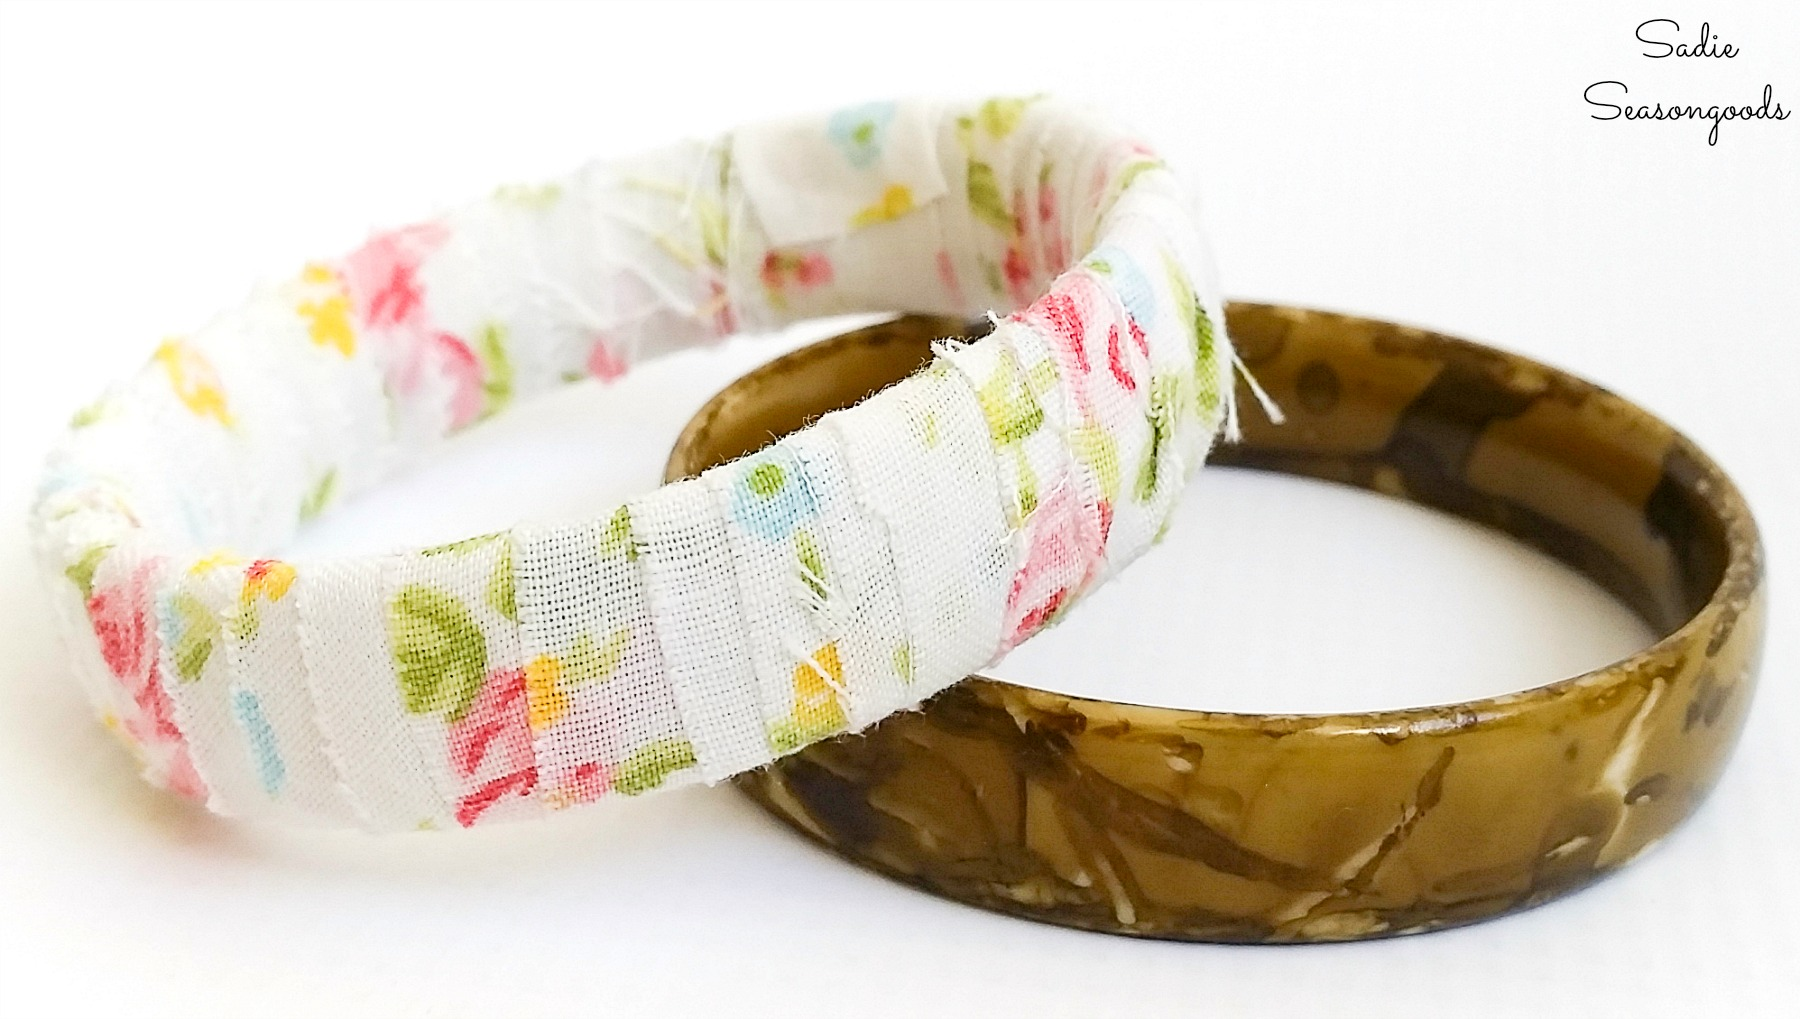 Recycled jewelry with plastic bangles as boho bracelets